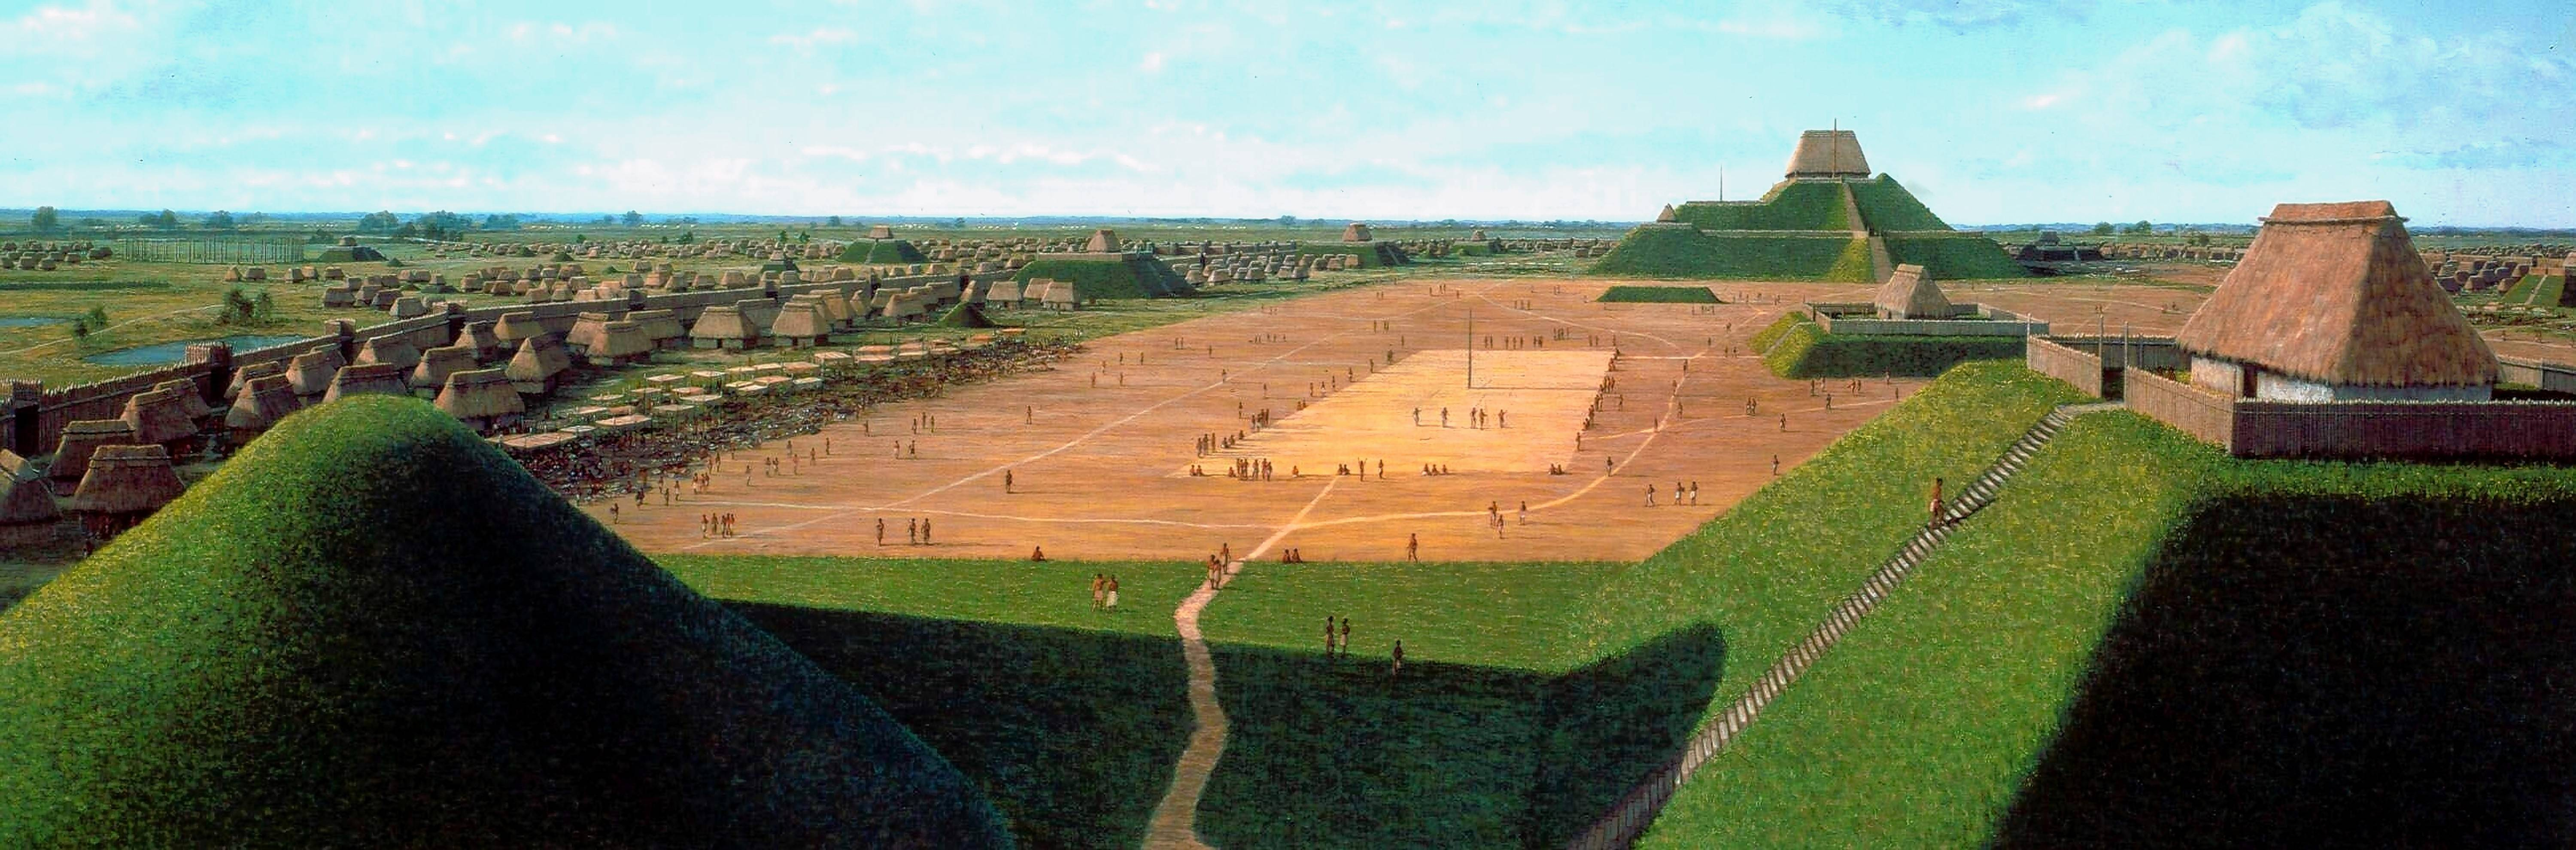 This is an artist's depiction of the central plaza in a city of 20,000 or more people that flourished 1,000 years ago at what is now the Cahokia Mounds State Historic Site.